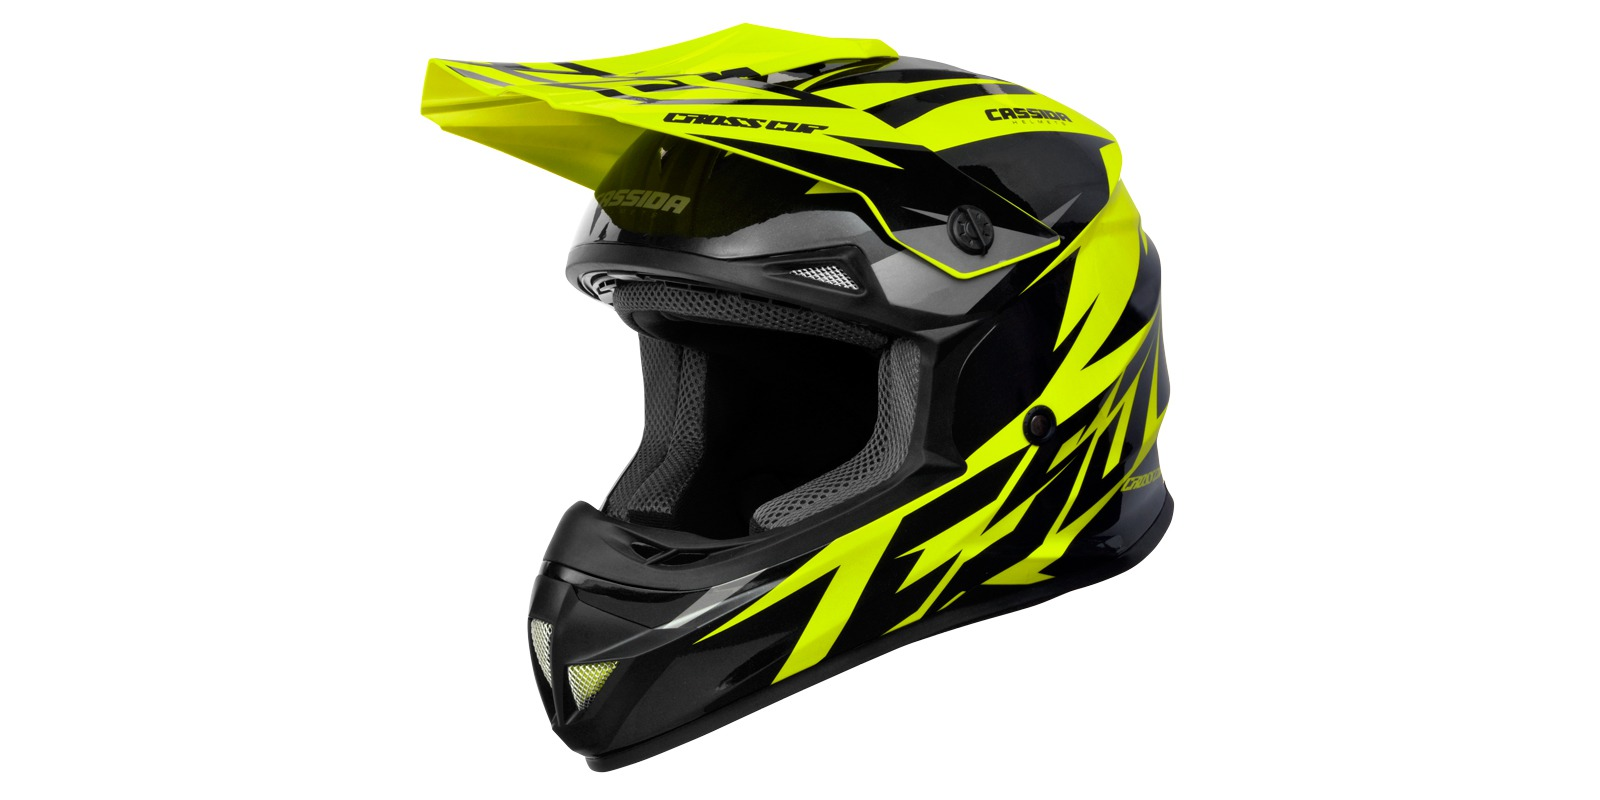 Cassida CROSS CUP 2 black/yellow fluo